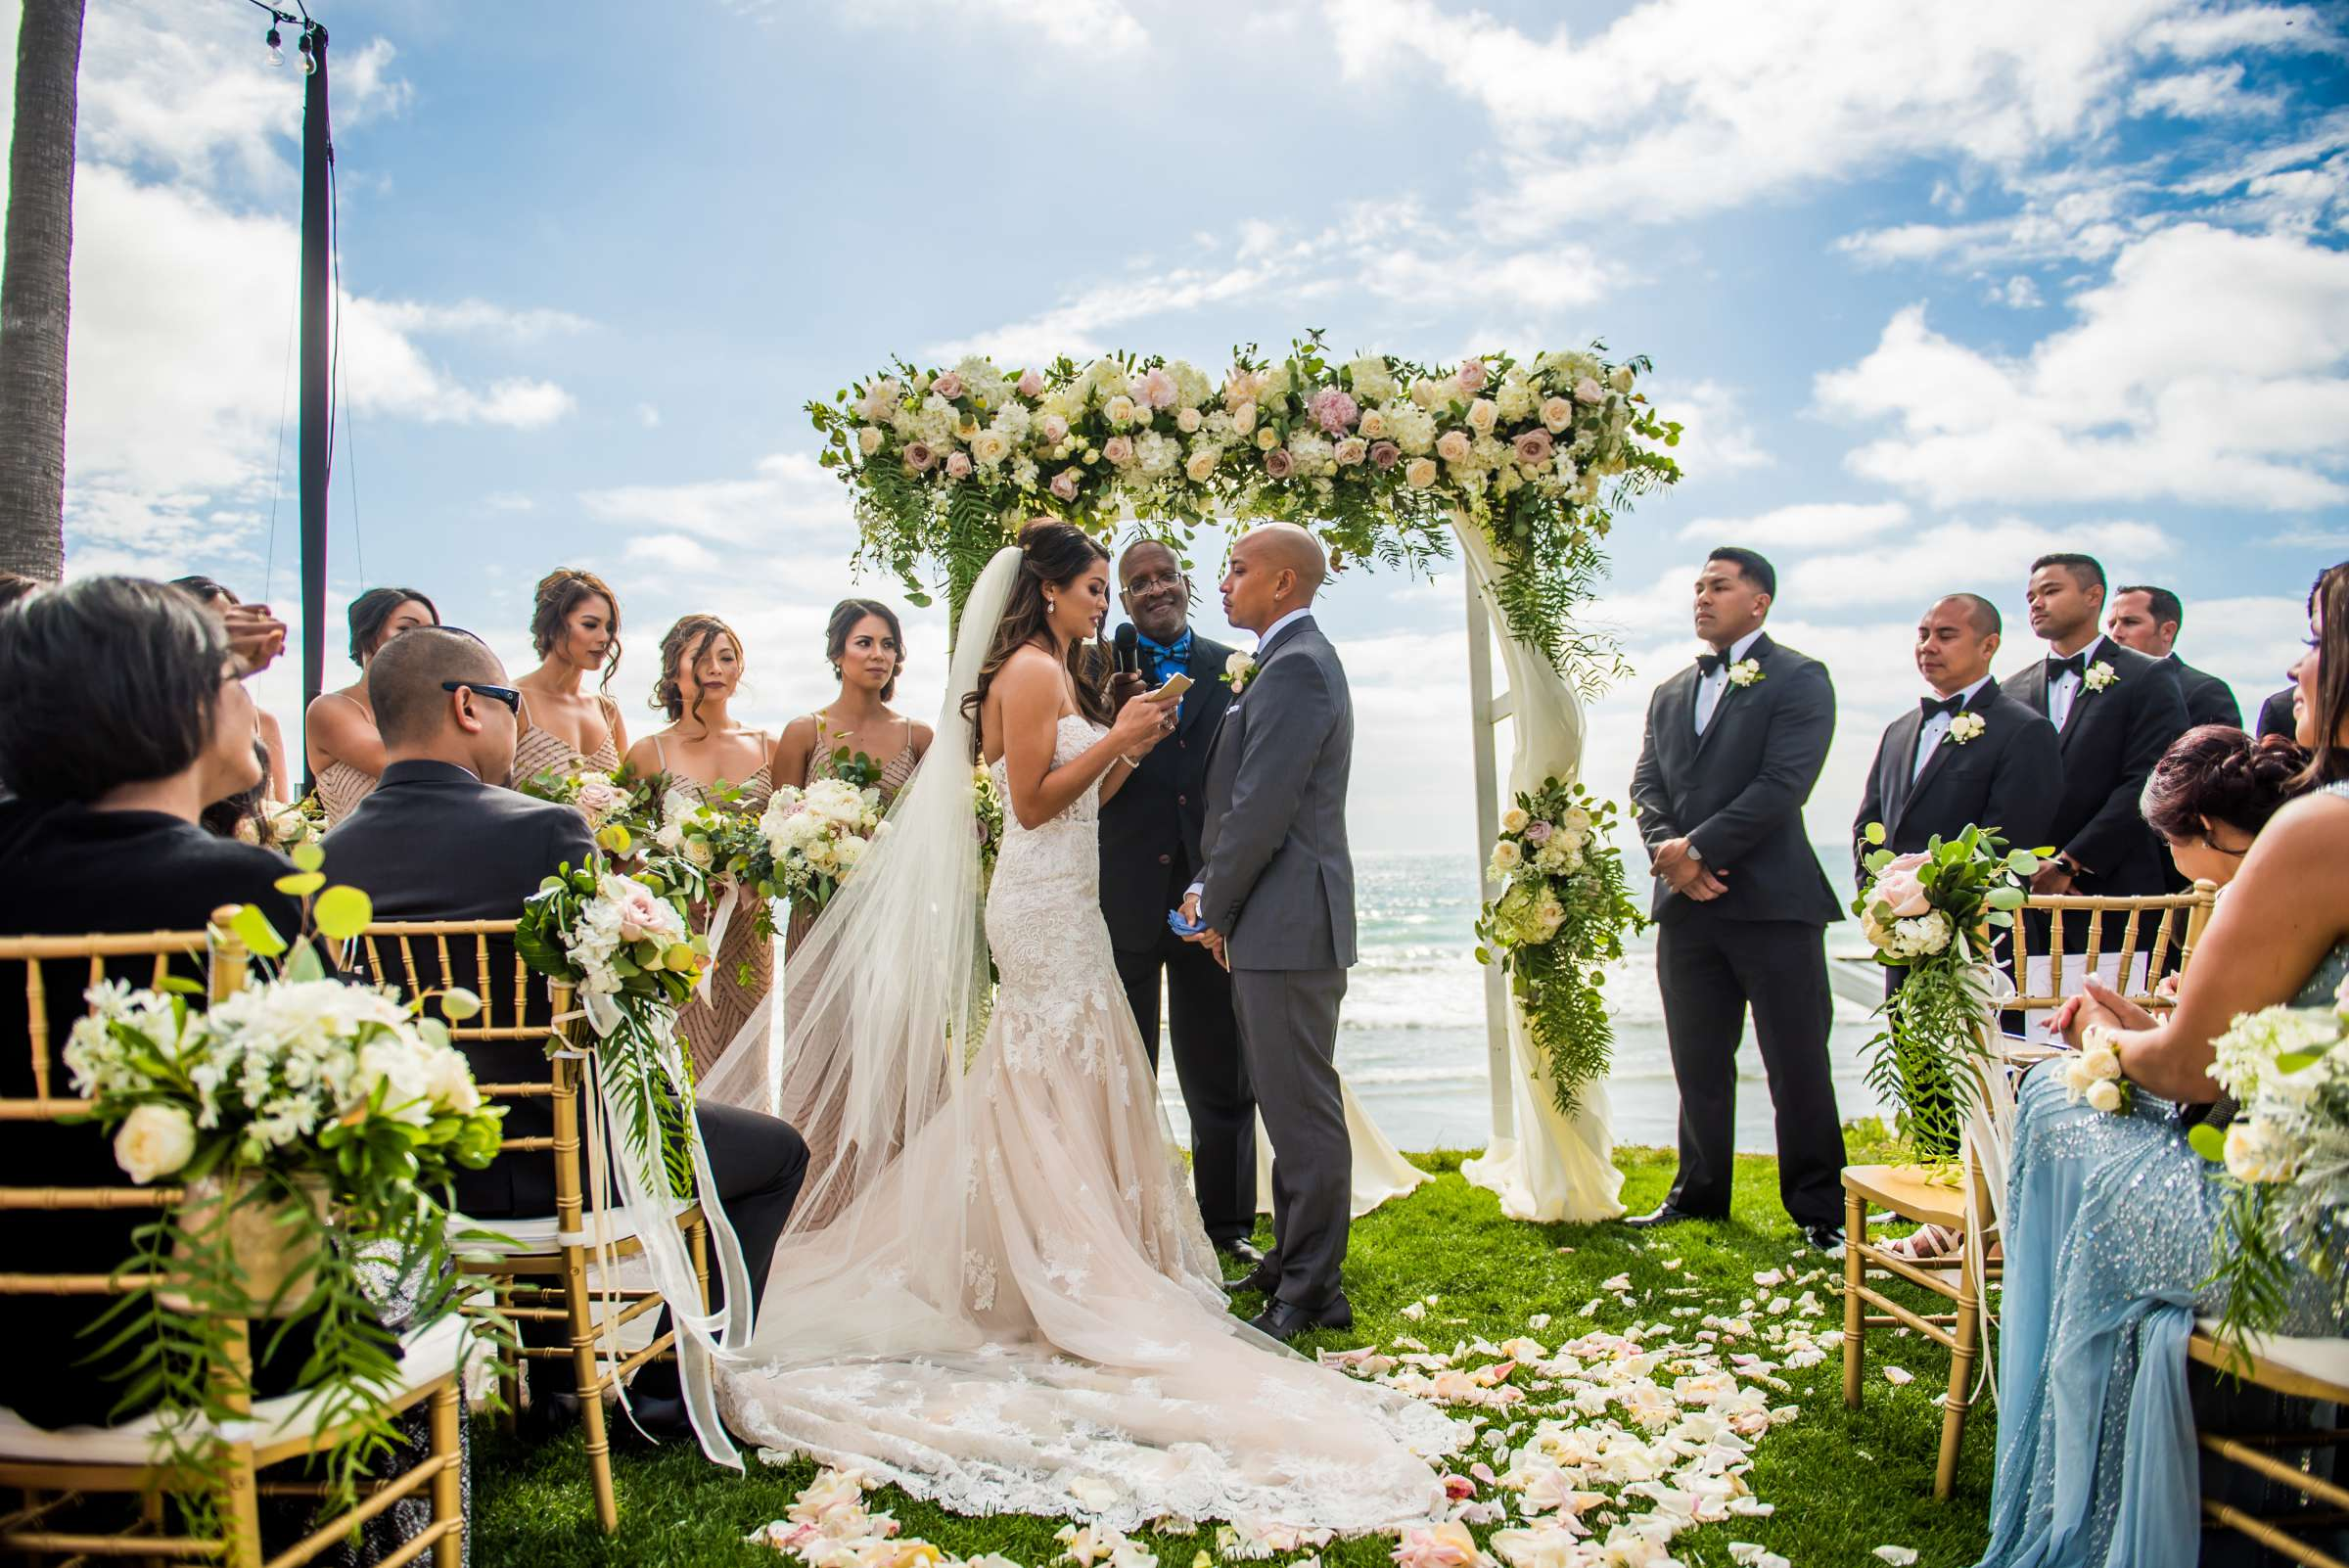 Scripps Seaside Forum Wedding coordinated by Lavish Weddings, Cindy and Justin Wedding Photo #381829 by True Photography